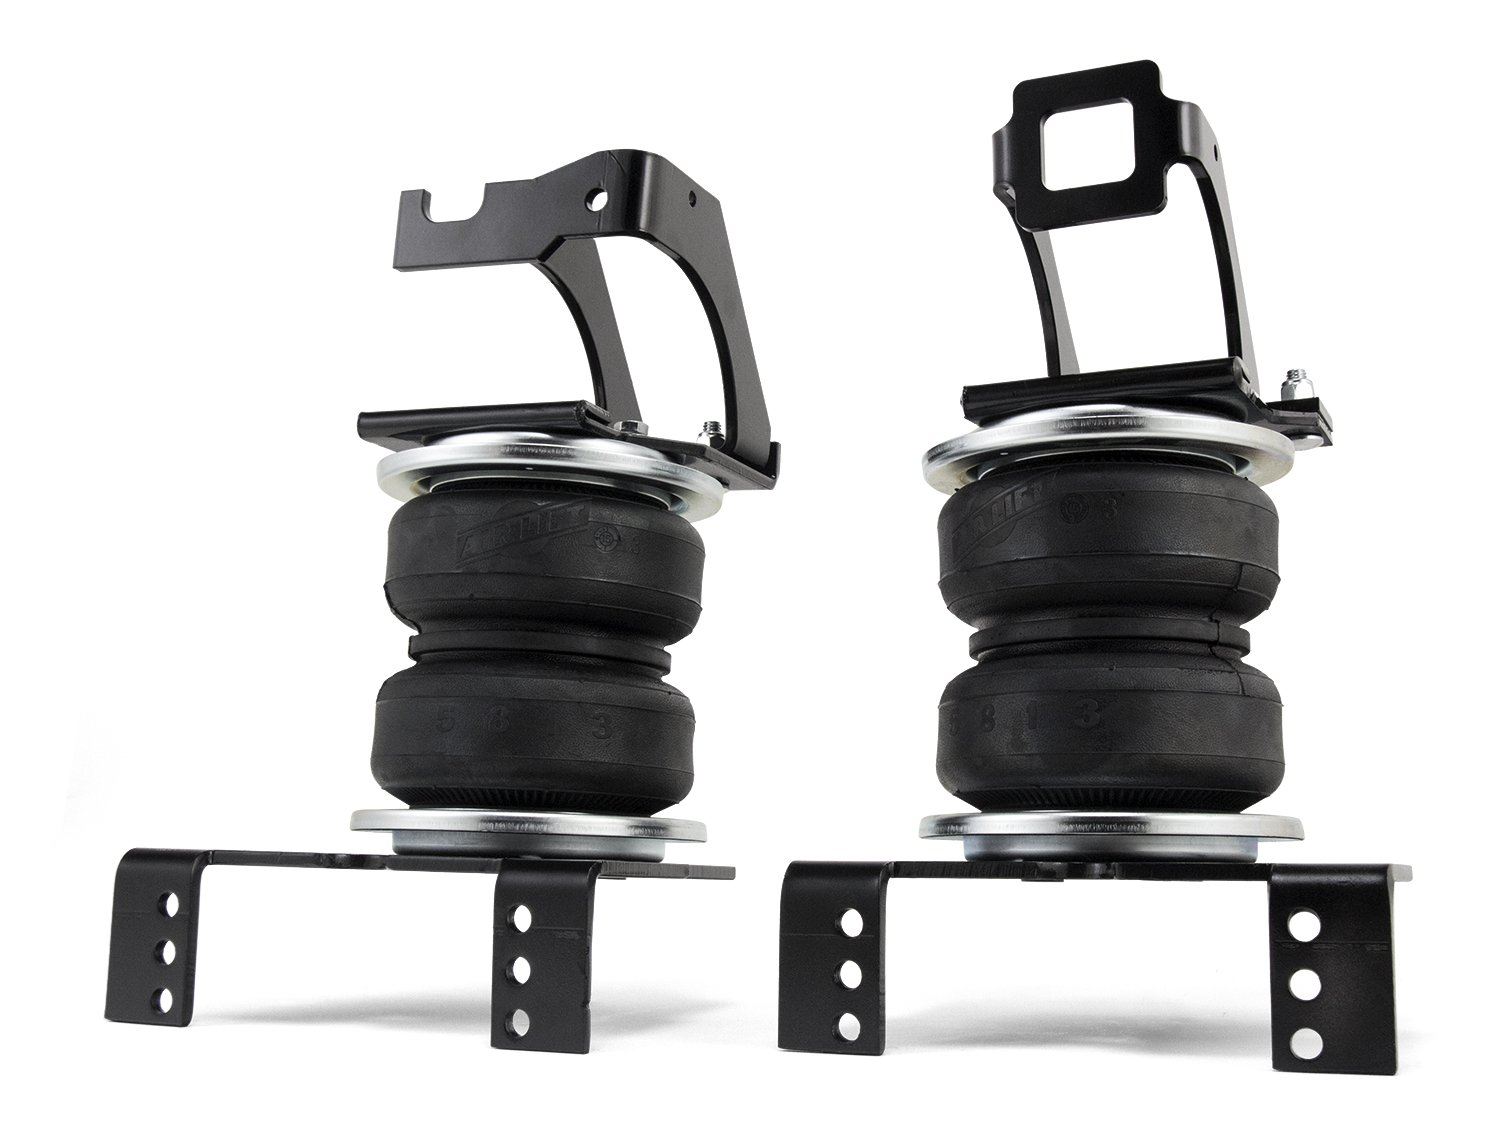 Air Lift 57396 Load Lifter 5000 Rear Air Bags Kit for 2011 Ford F250 / F350 / F450 4WD by Air Lift (Image #2)